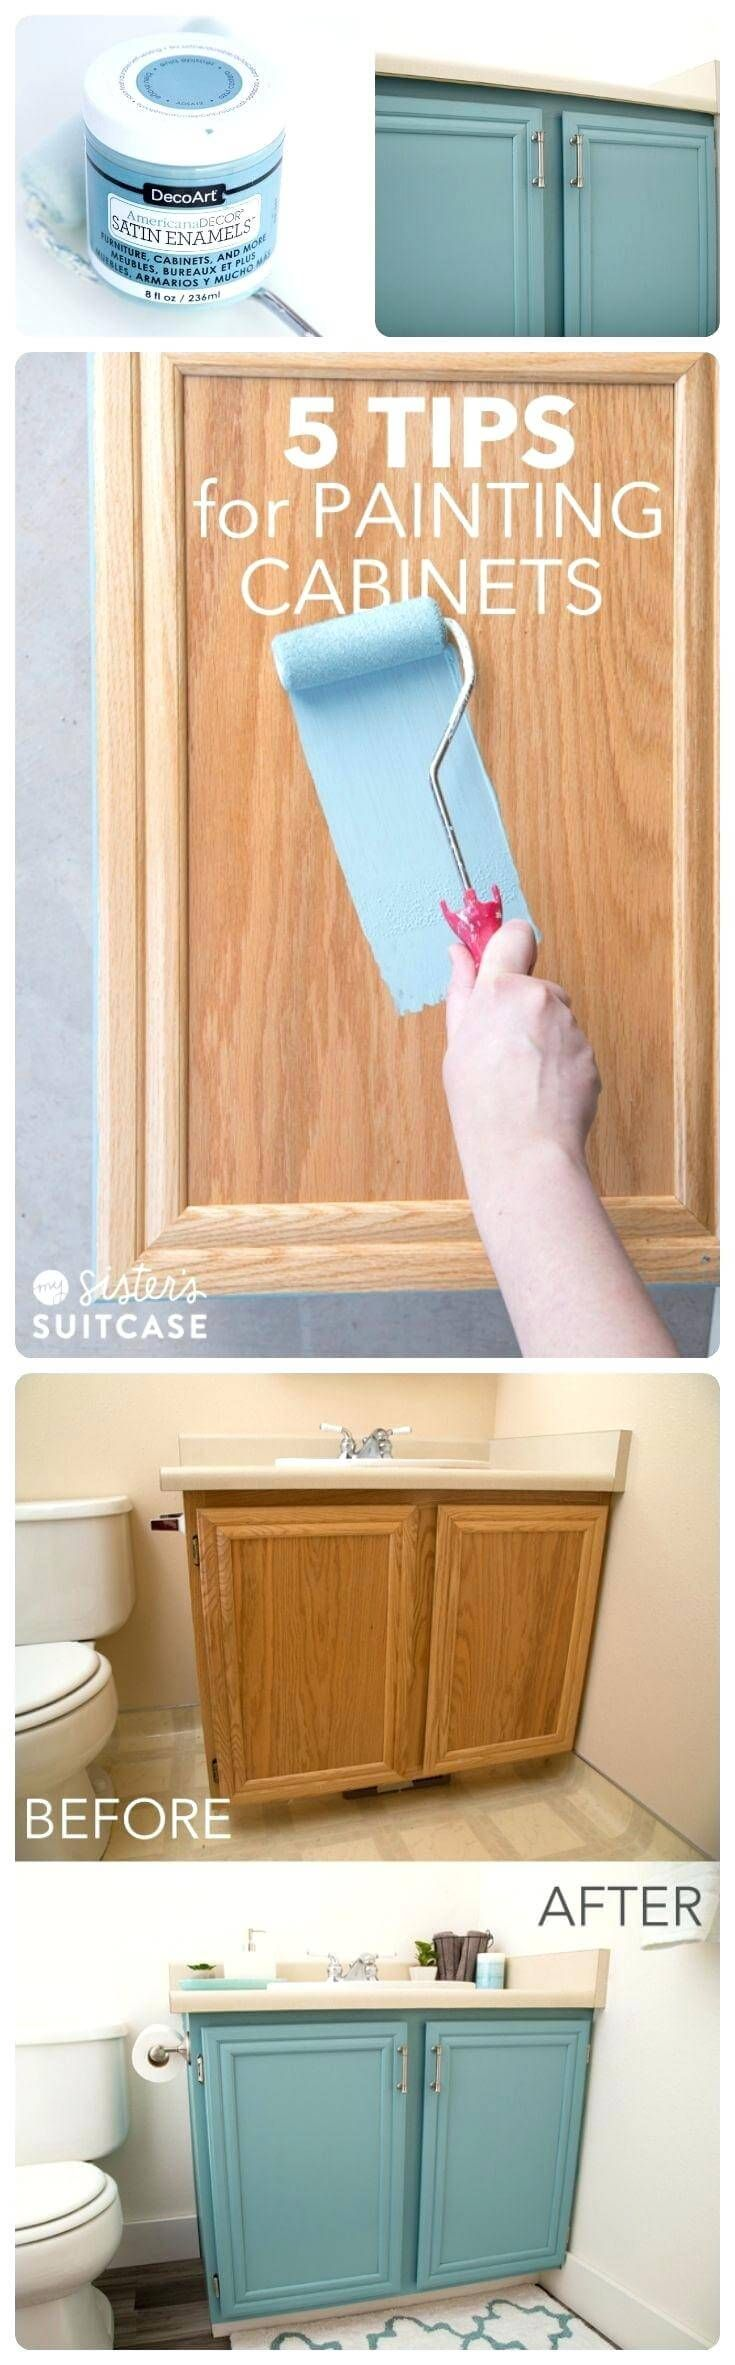 28 Fabulous Painting Ideas To Give Your Furniture A Whole New Look Home Diy Home Remodeling Bathrooms Remodel